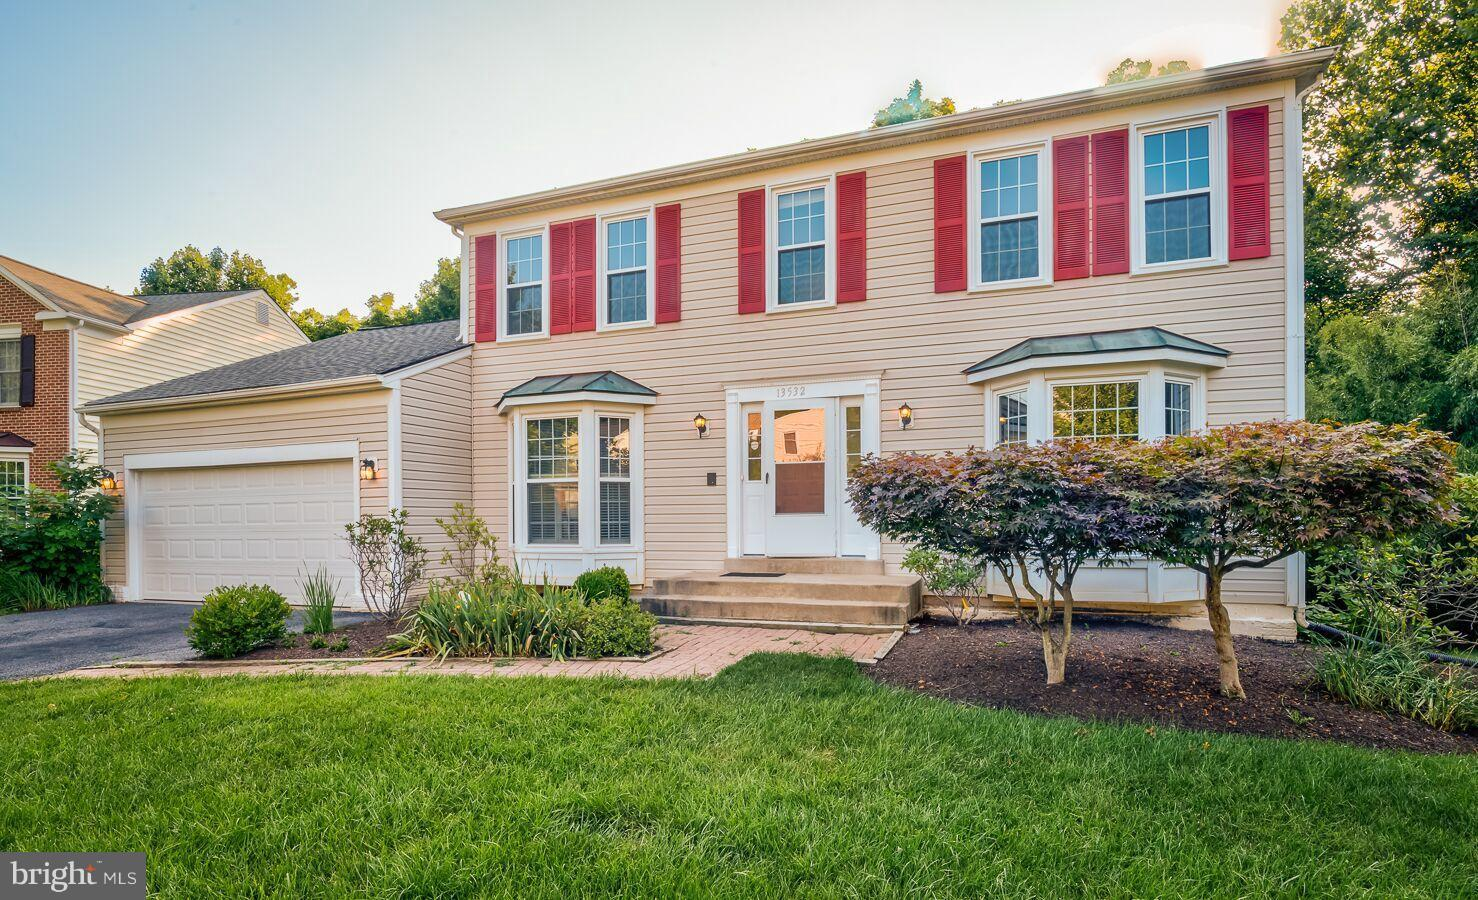 13532 COACHLAMP LANE, SILVER SPRING, MD 20906